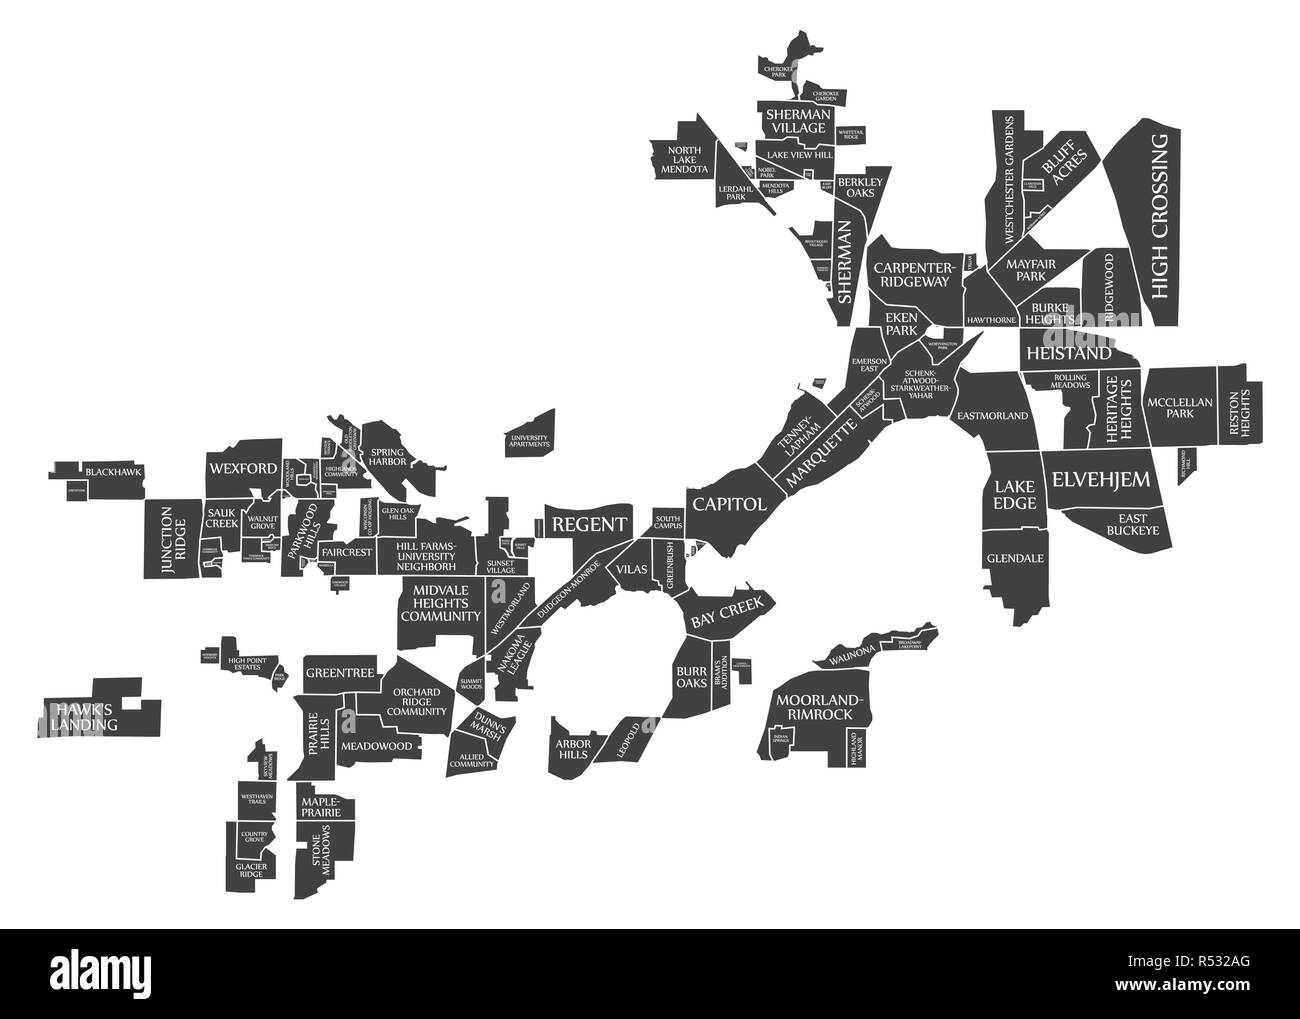 Madison Wisconsin City Map USA labelled black illustration Stock Vector